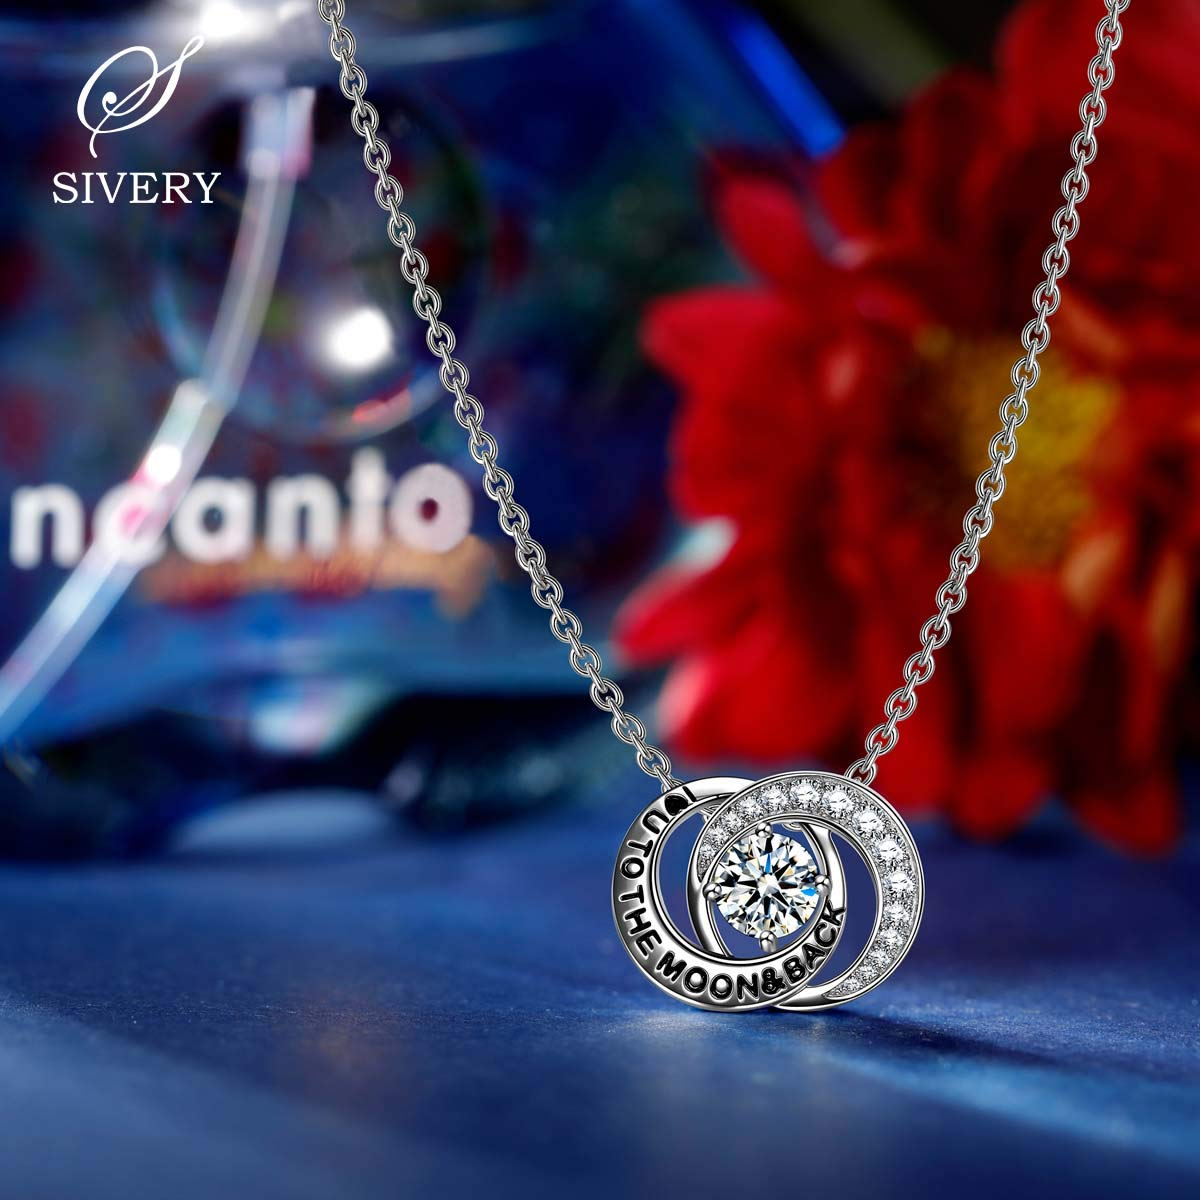 SIVERY Love Forever Necklaces for Women Hypoallergenic 925 Sterling Silver Necklace Pendant Gifts for Mom Jewelry for Women